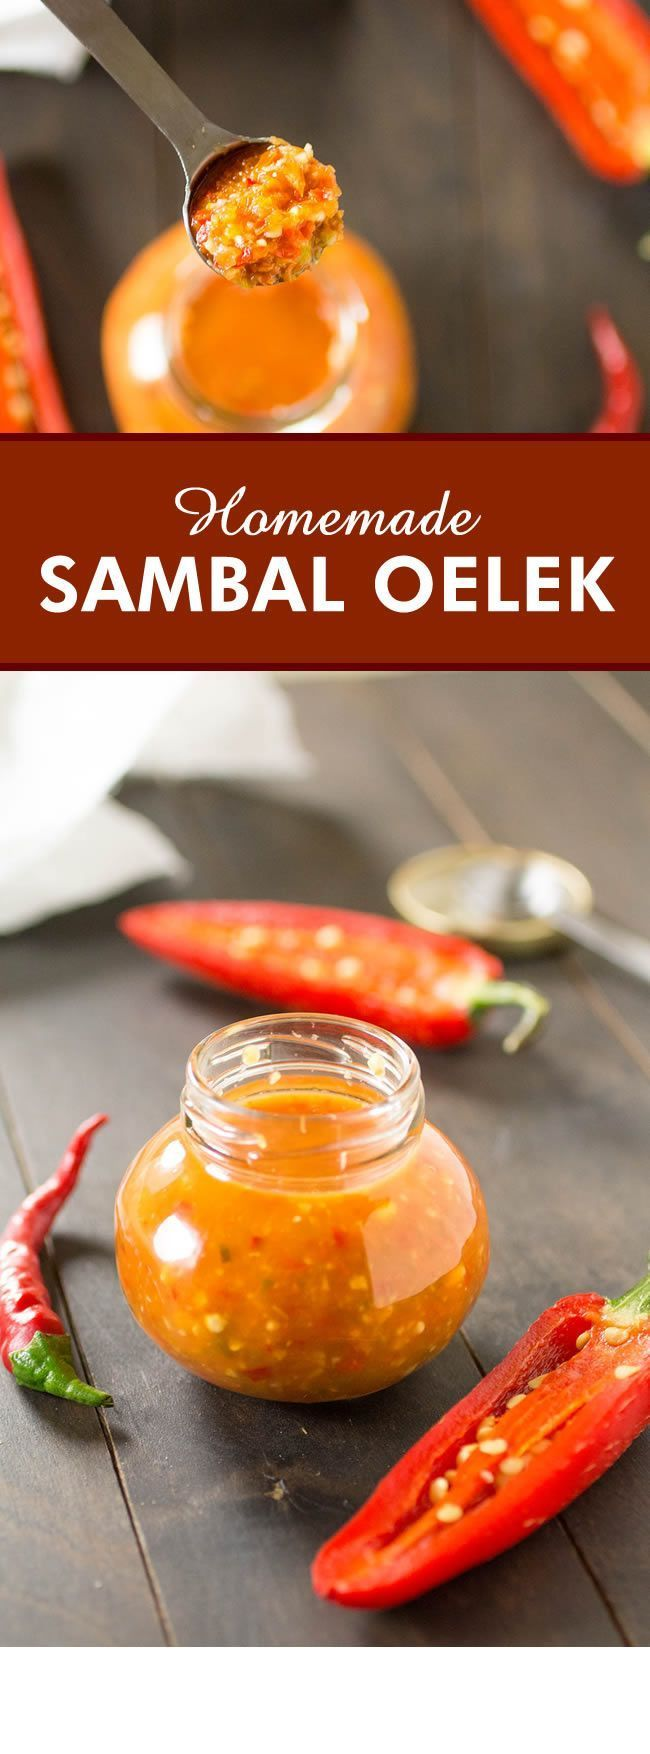 Sambal Oelek - A recipe for homemade Sambal Oelek, the classic chili paste used for cooking, made with a variety of ground chili peppers, vinegar and salt.